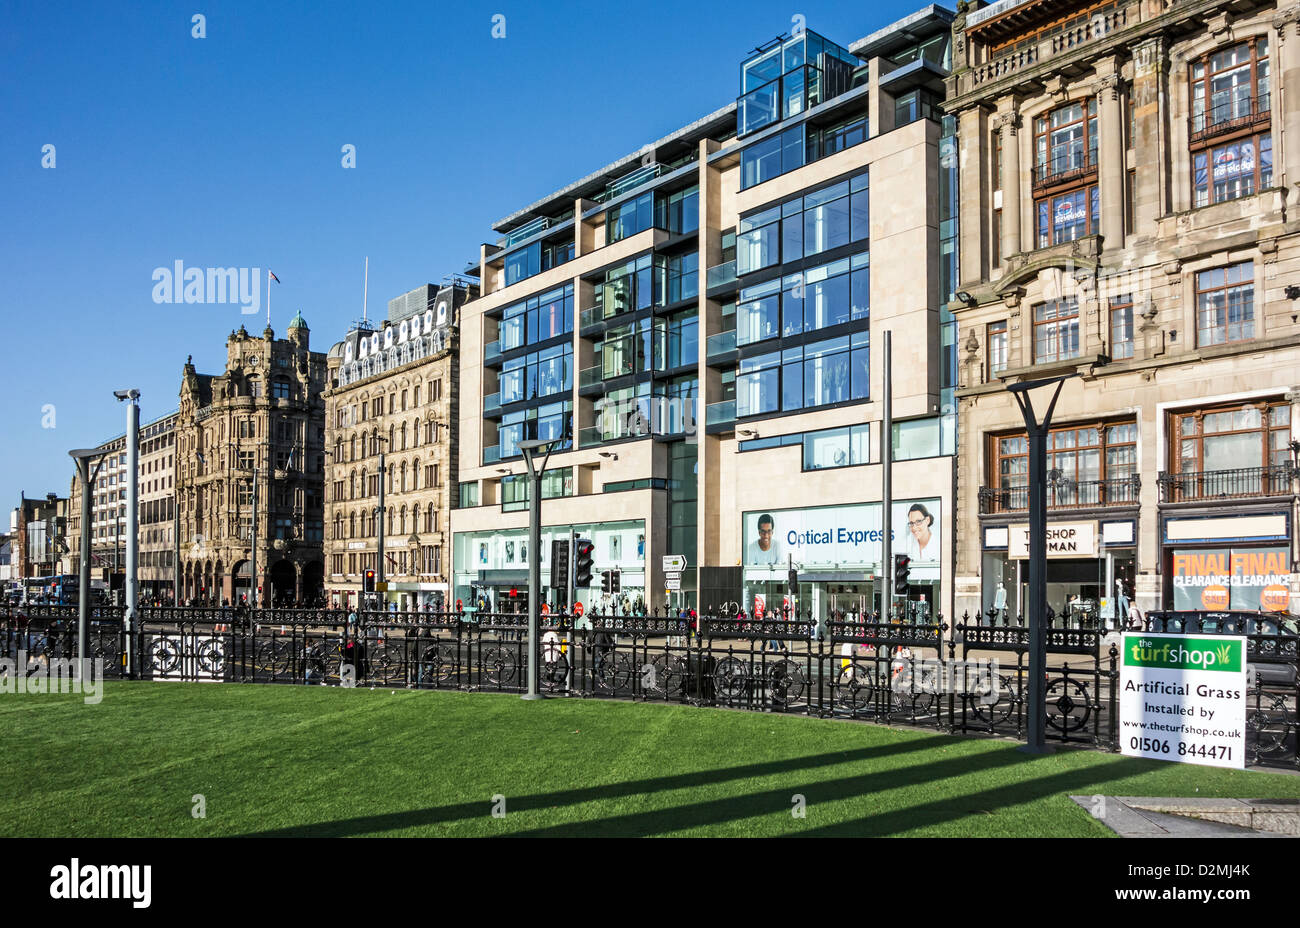 New artificial grass laid on top of Princes Mall in Edinburgh with Princes Street buildings and shops behind. - Stock Image